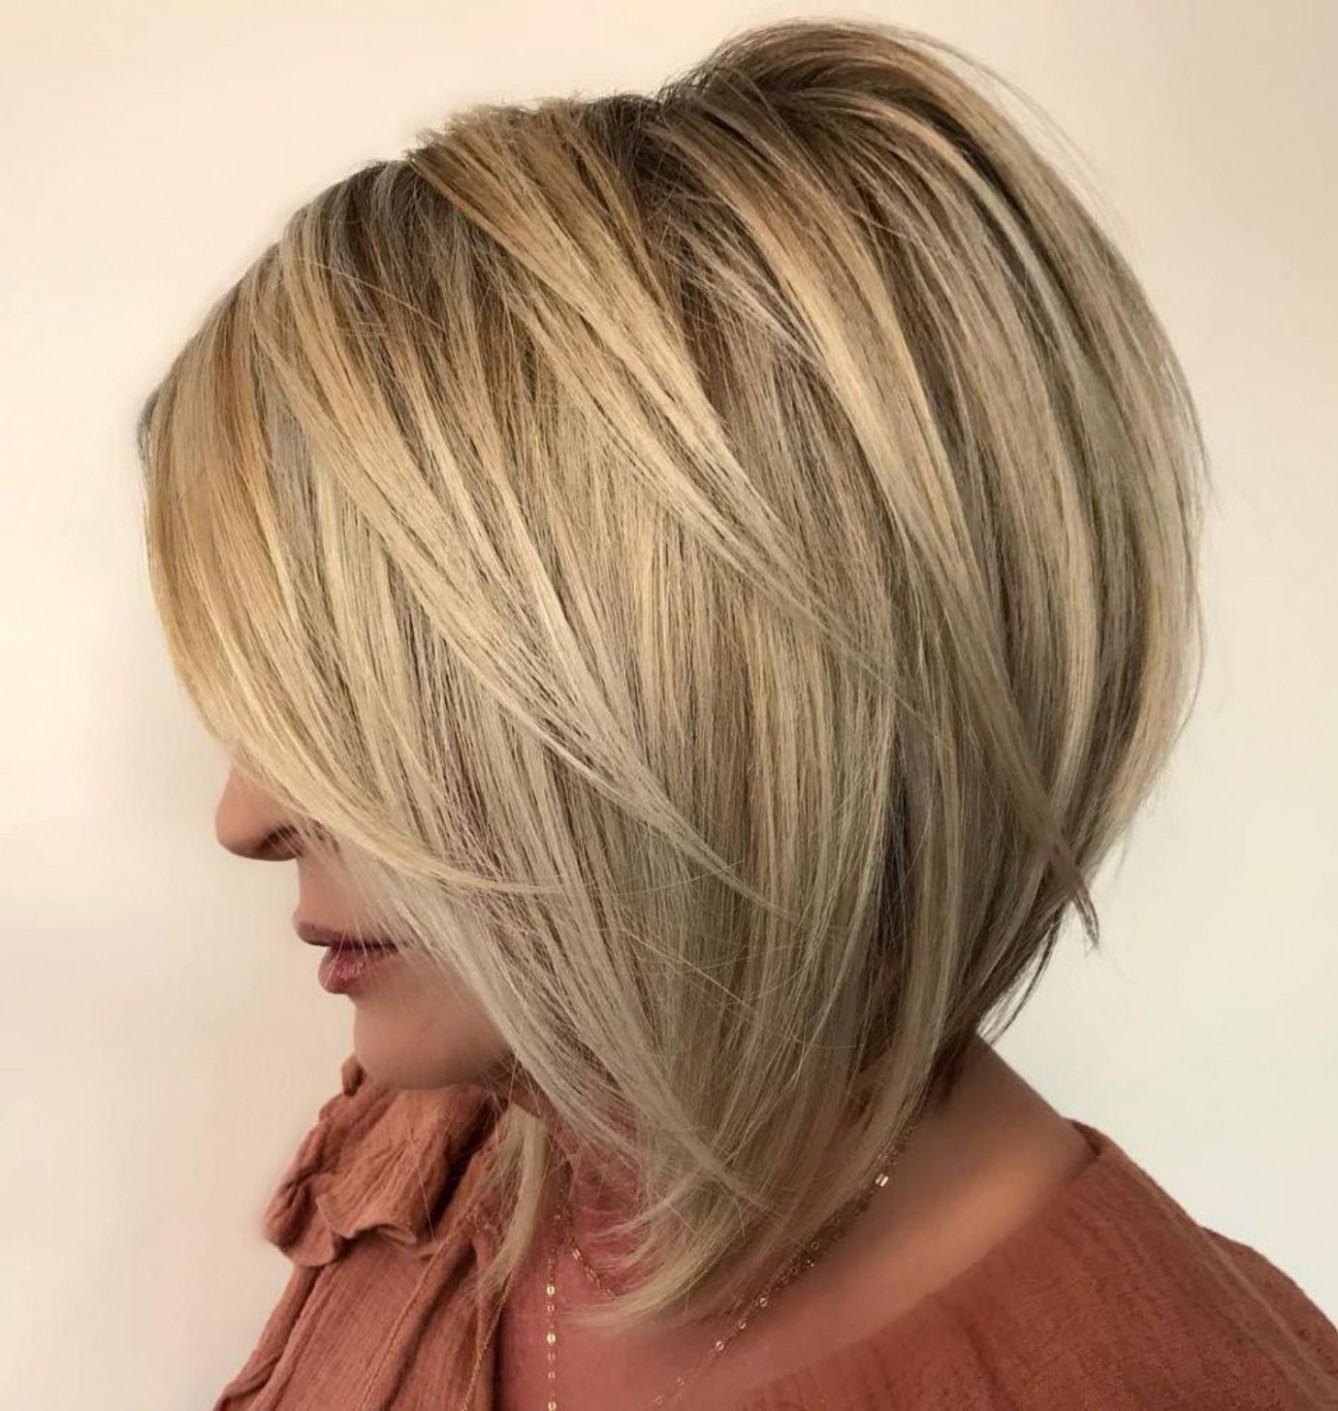 Pin On Hairstyles Inverted Haircut